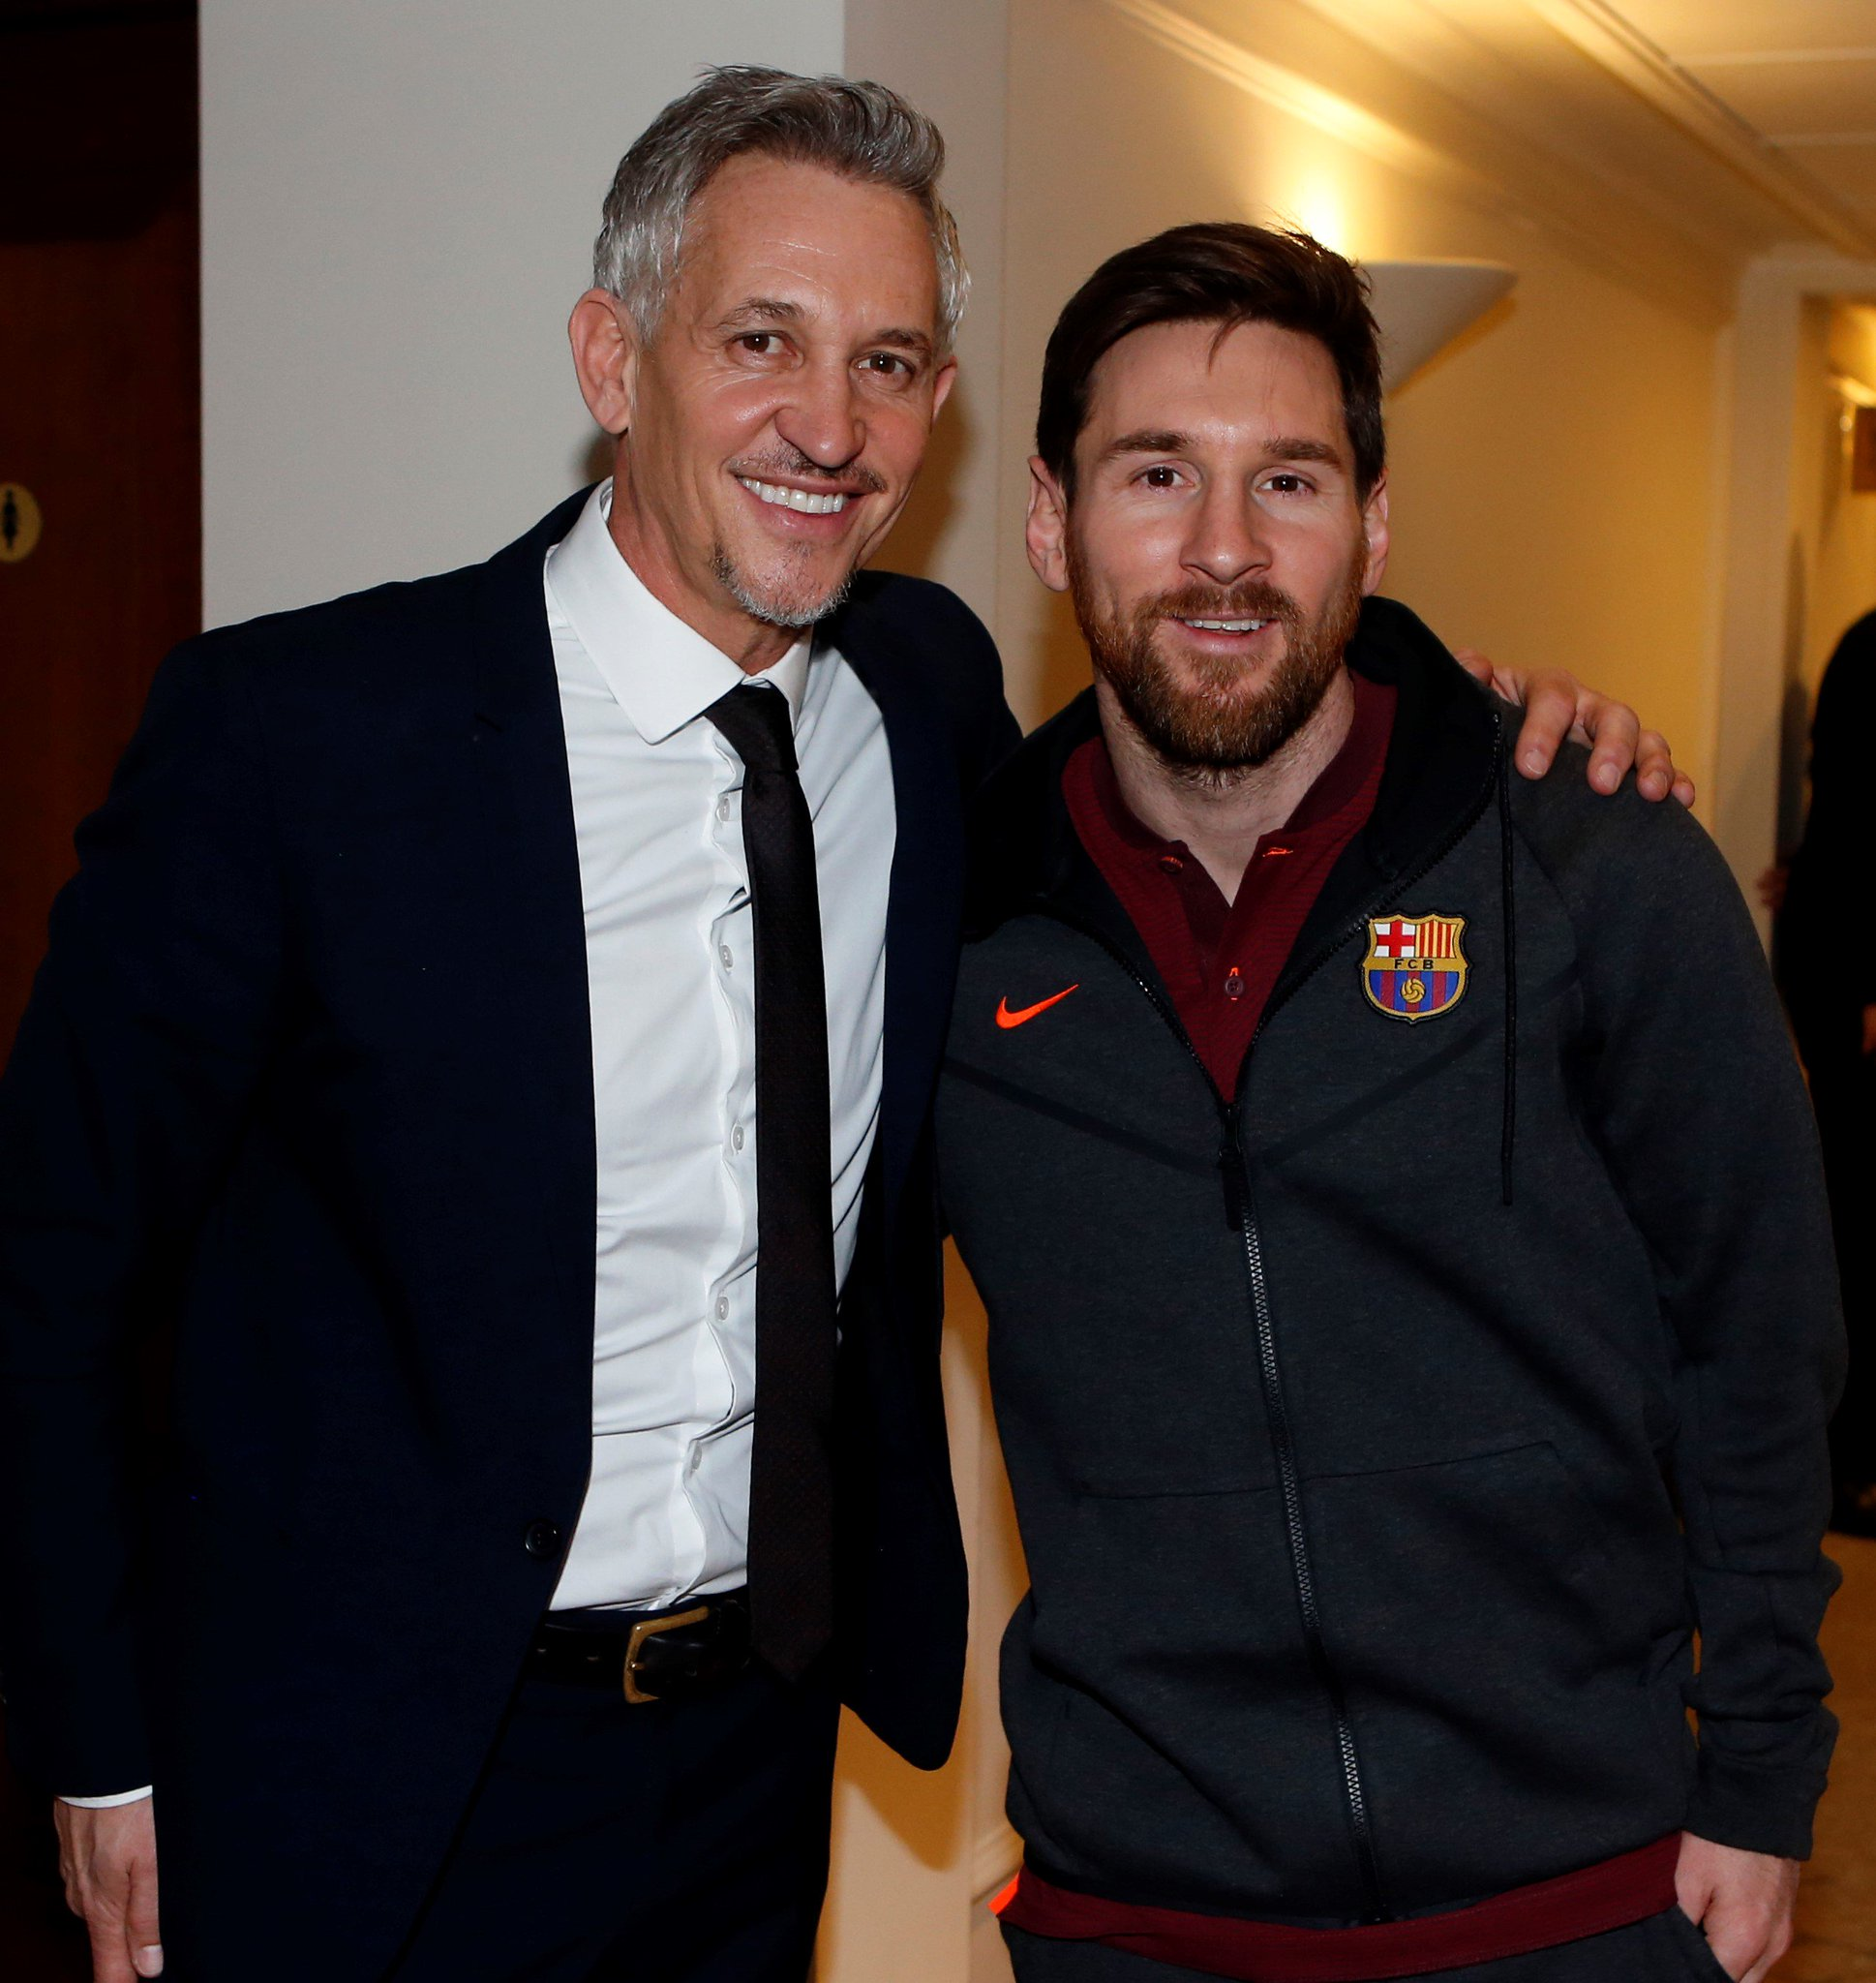 �� London ⚽️ @GaryLineker and Leo #Messi �� Any advice, Gary? ���� #ChelseaBarça https://t.co/024te2LBID